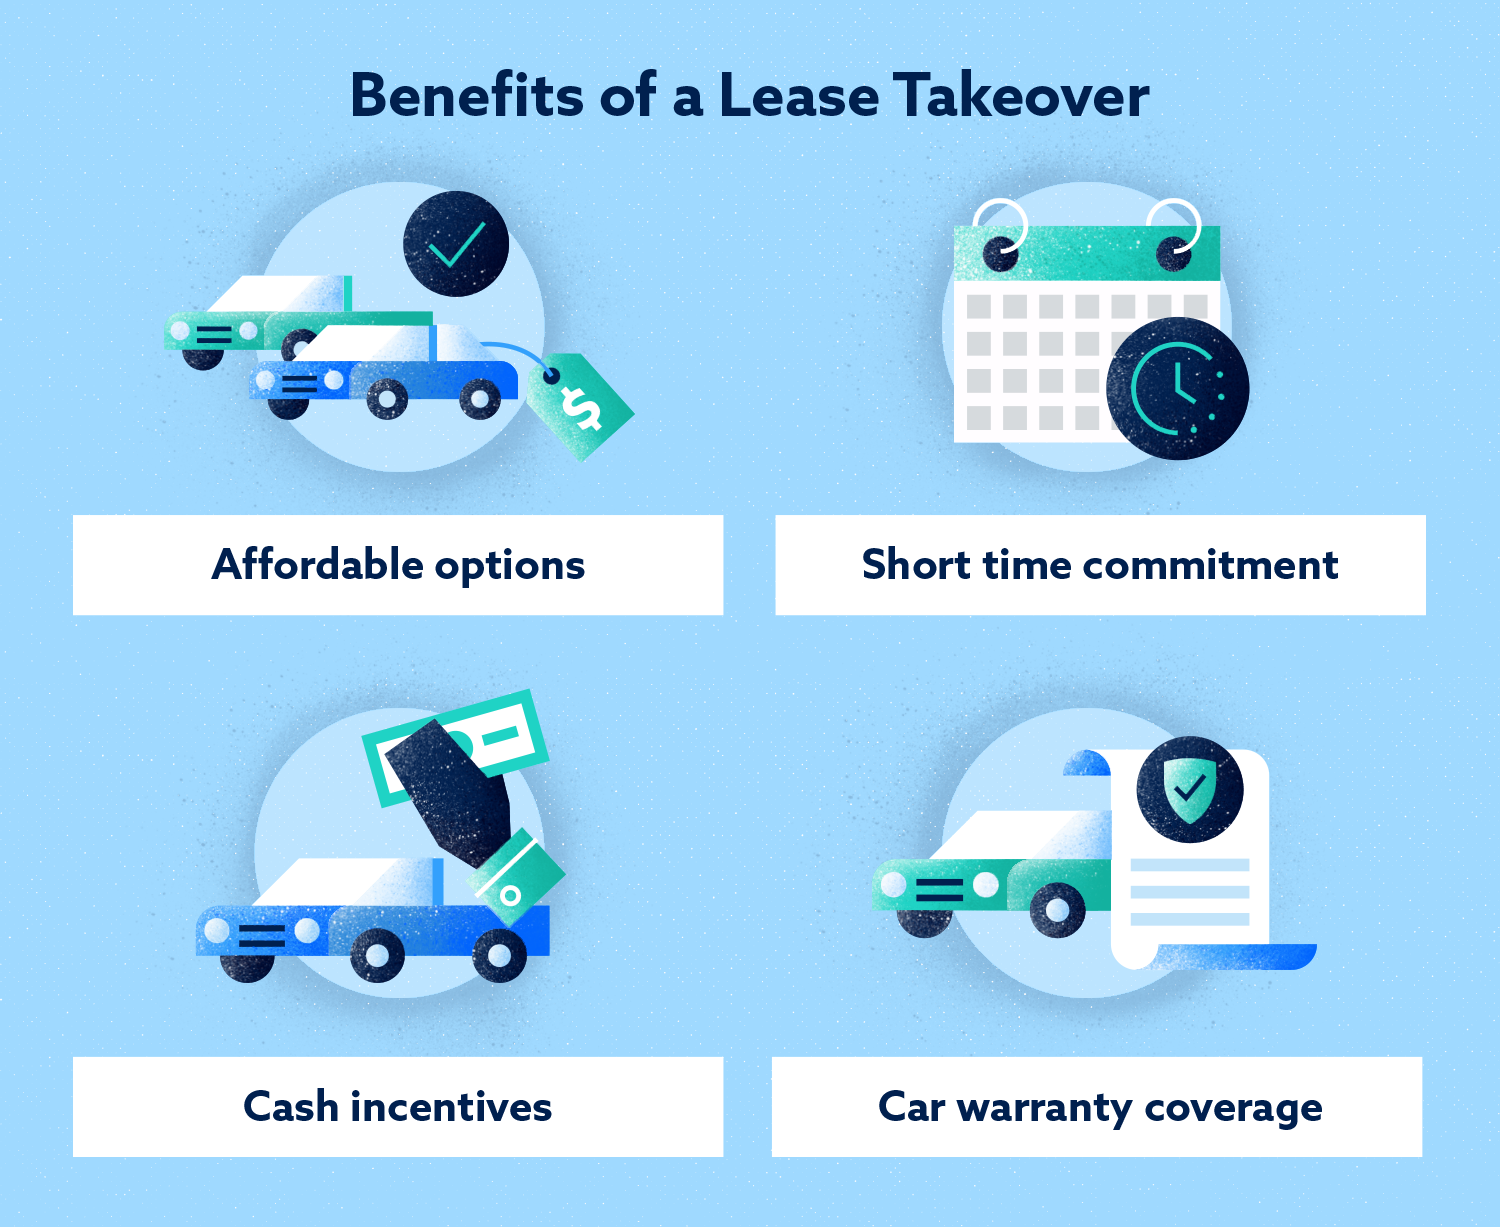 benefits of a lease takeover